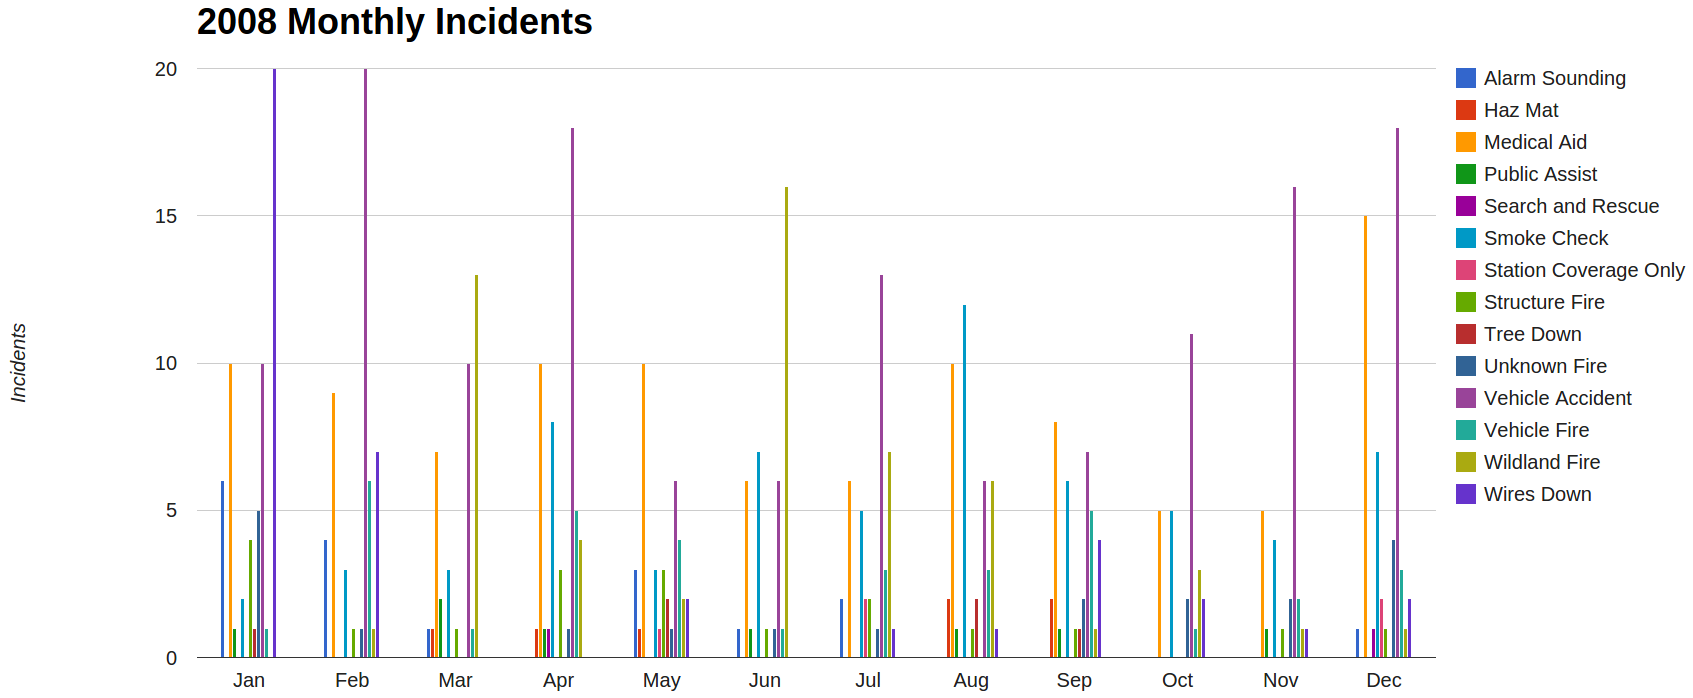 https://sites.google.com/a/lomaprietafire.org/loma-prieta-fire-rescue/home/incident-statistics/2008-incident-type-distribution/2008_monthly_incidents.png